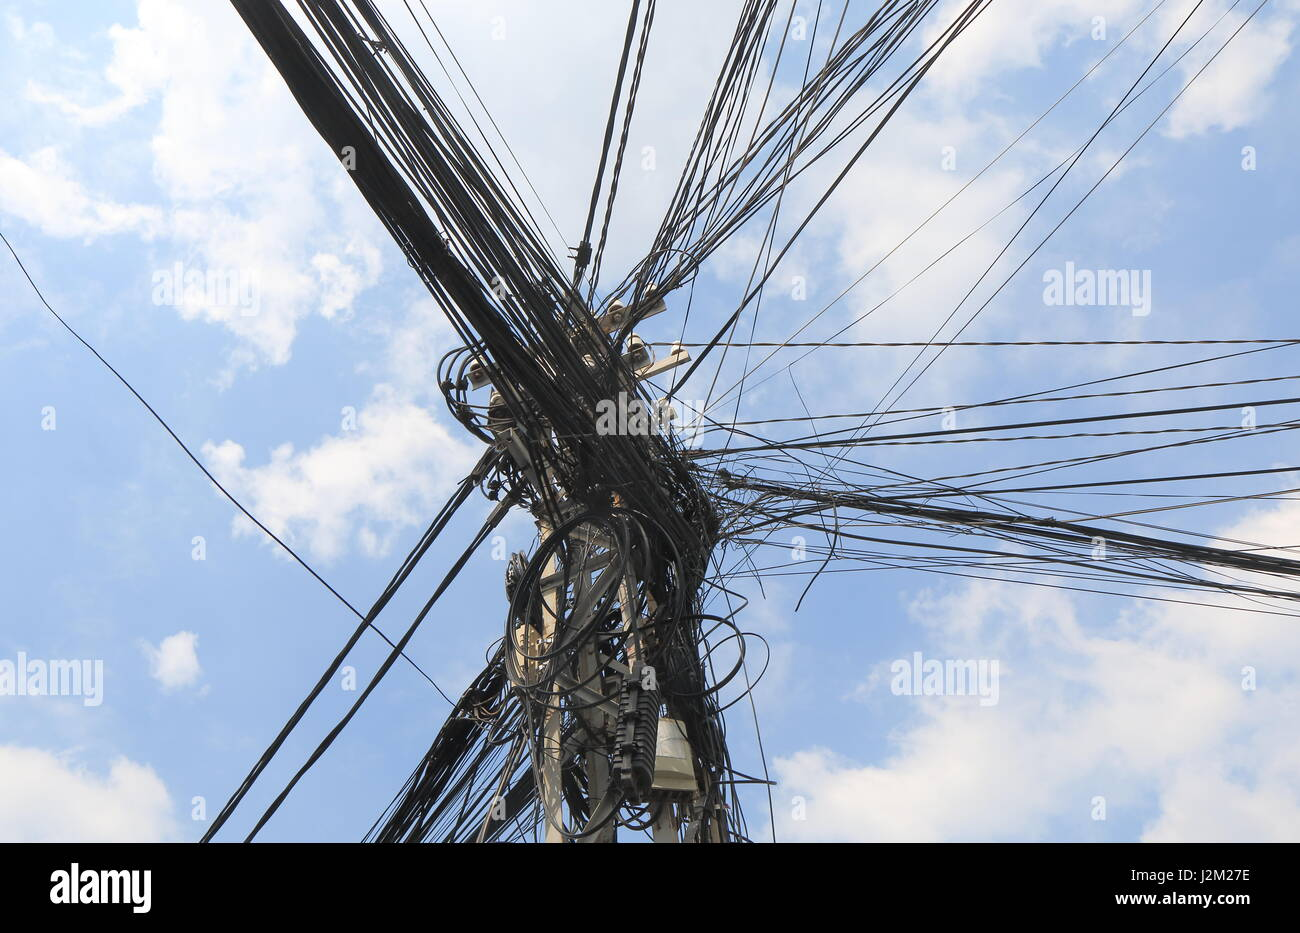 Telephone Pole Wire Stock Photos Images How To A Electric In Vietnam Image